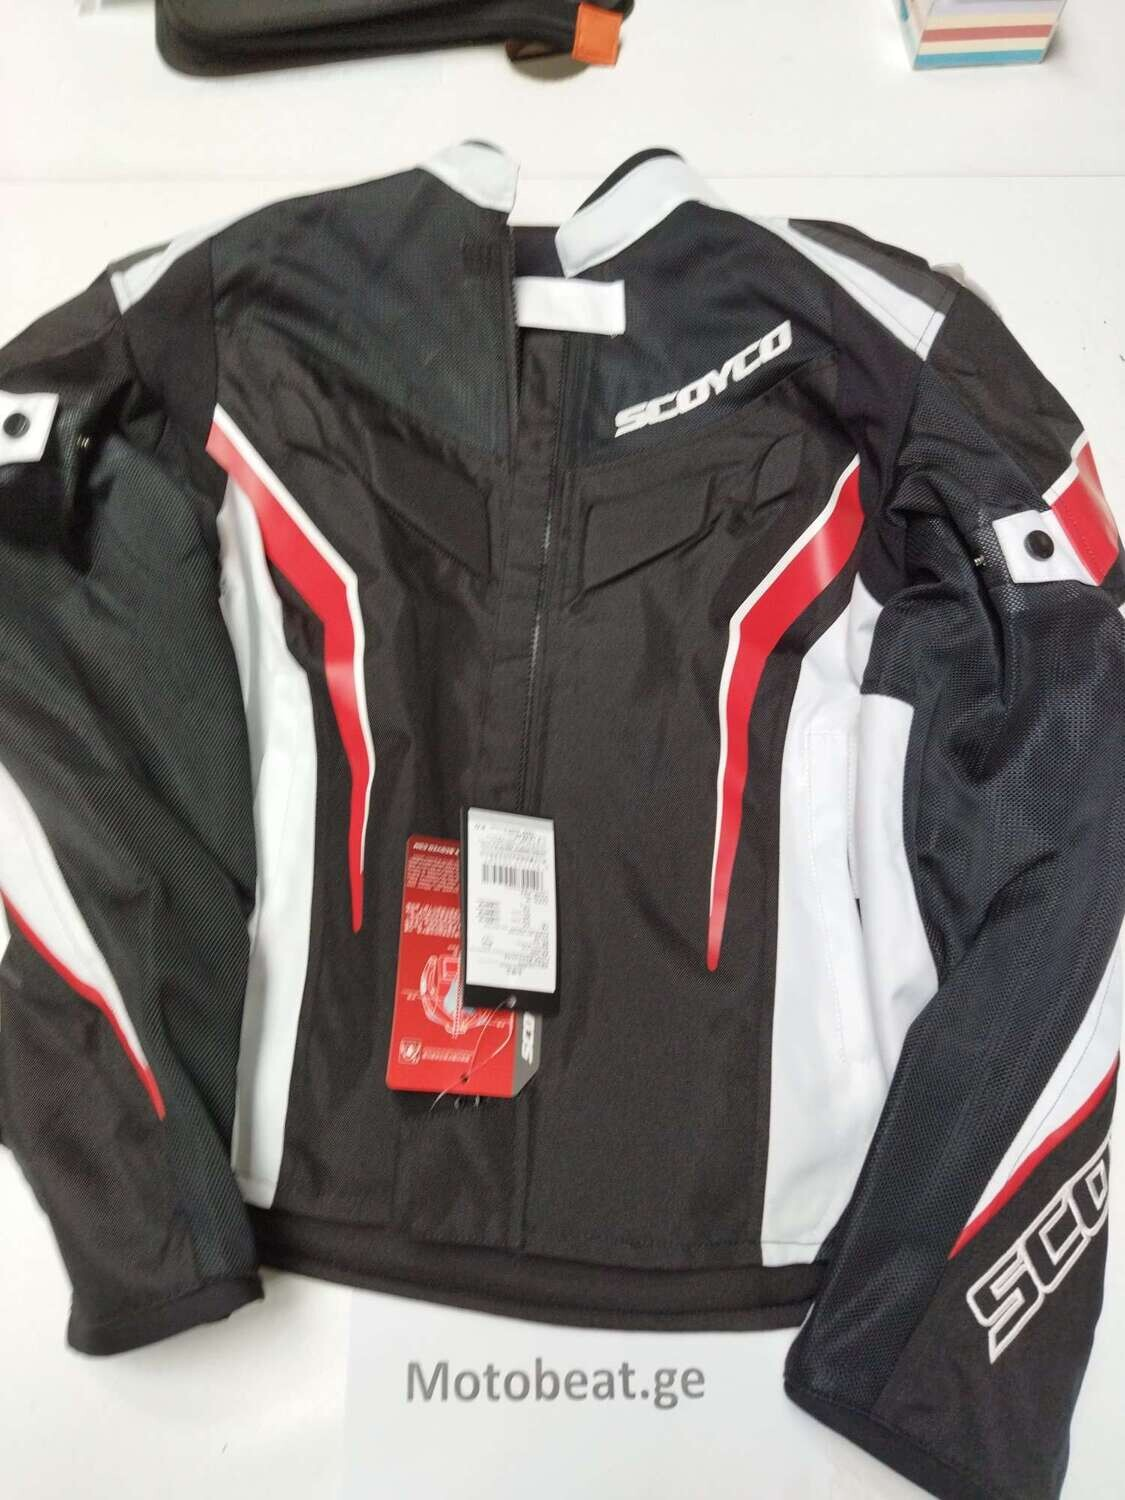 Men Clothing Motorcycle Jacket  Breathable Mesh Riding Race Summer ventilation Air Mesh Stainless Protector Body armor